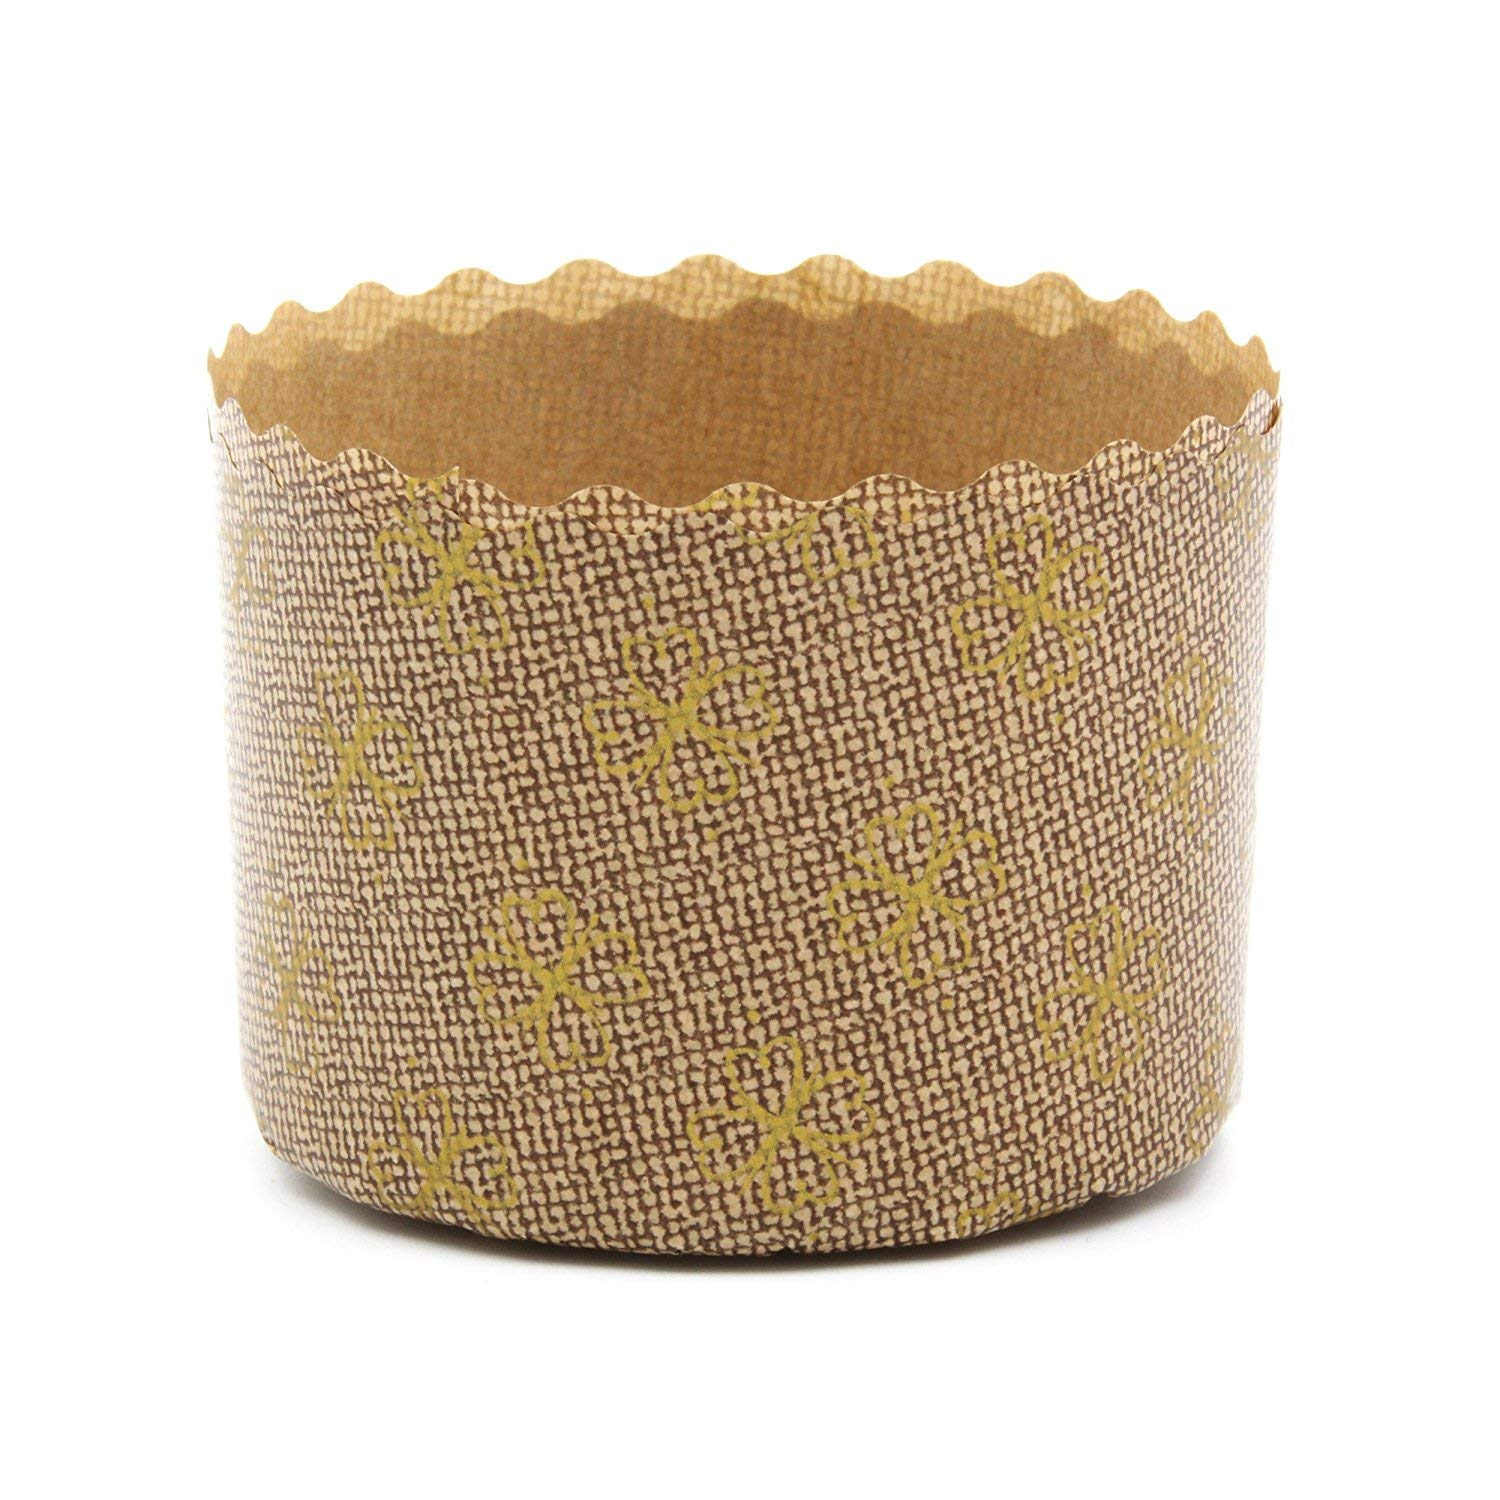 Panettone Paper Molds by Ecobake | Paper Souffle Cups and Paper Muffin Cups | Versatile Design | Non Stick, Microwave Safe, Freezer Safe | Size W2.75'' x H1.96'' 100gr | (200 Pieces)